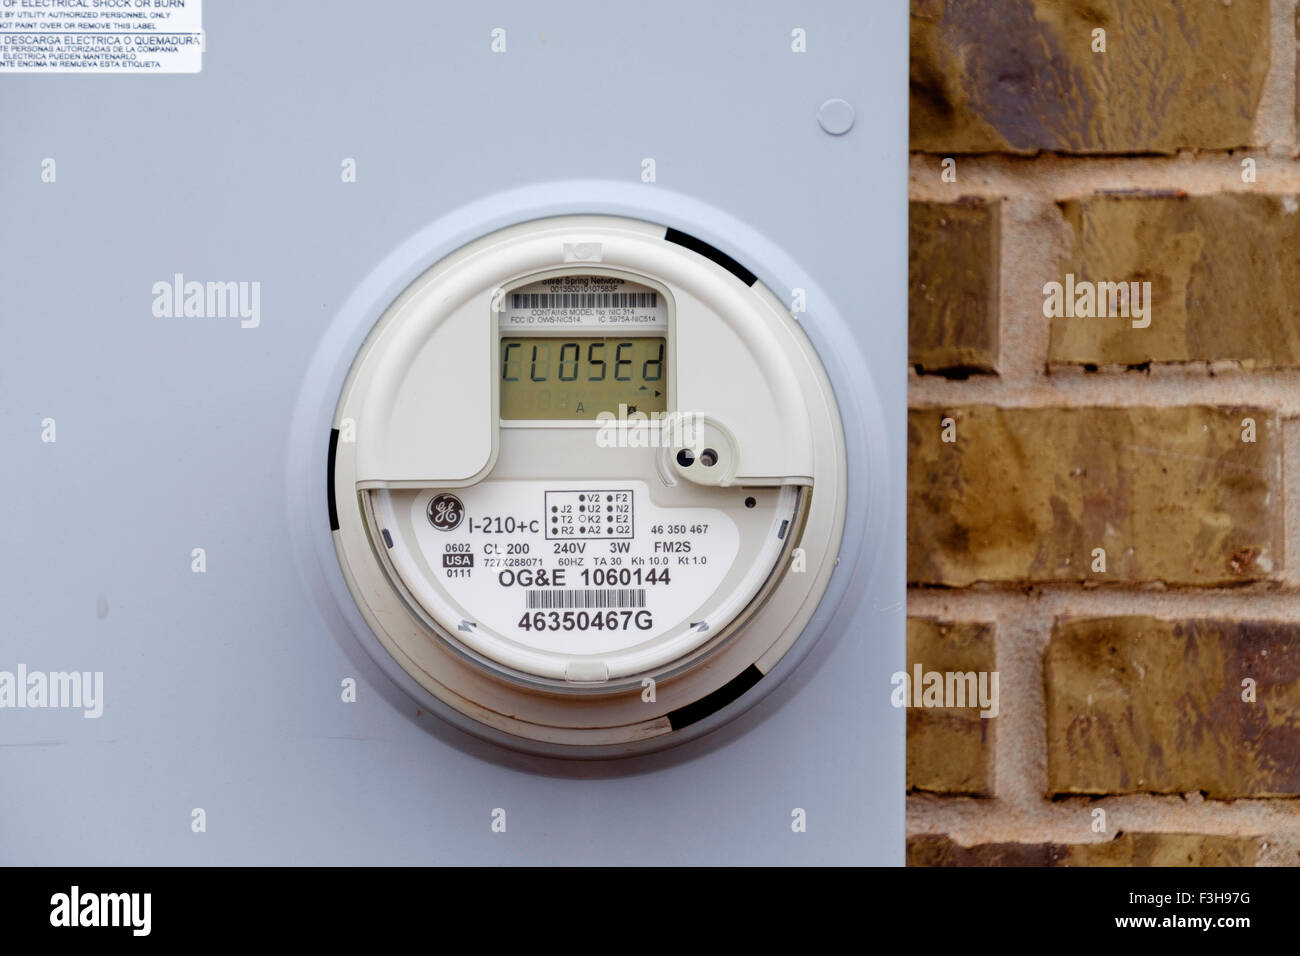 A closed electric meter in Oklahoma, USA. - Stock Image